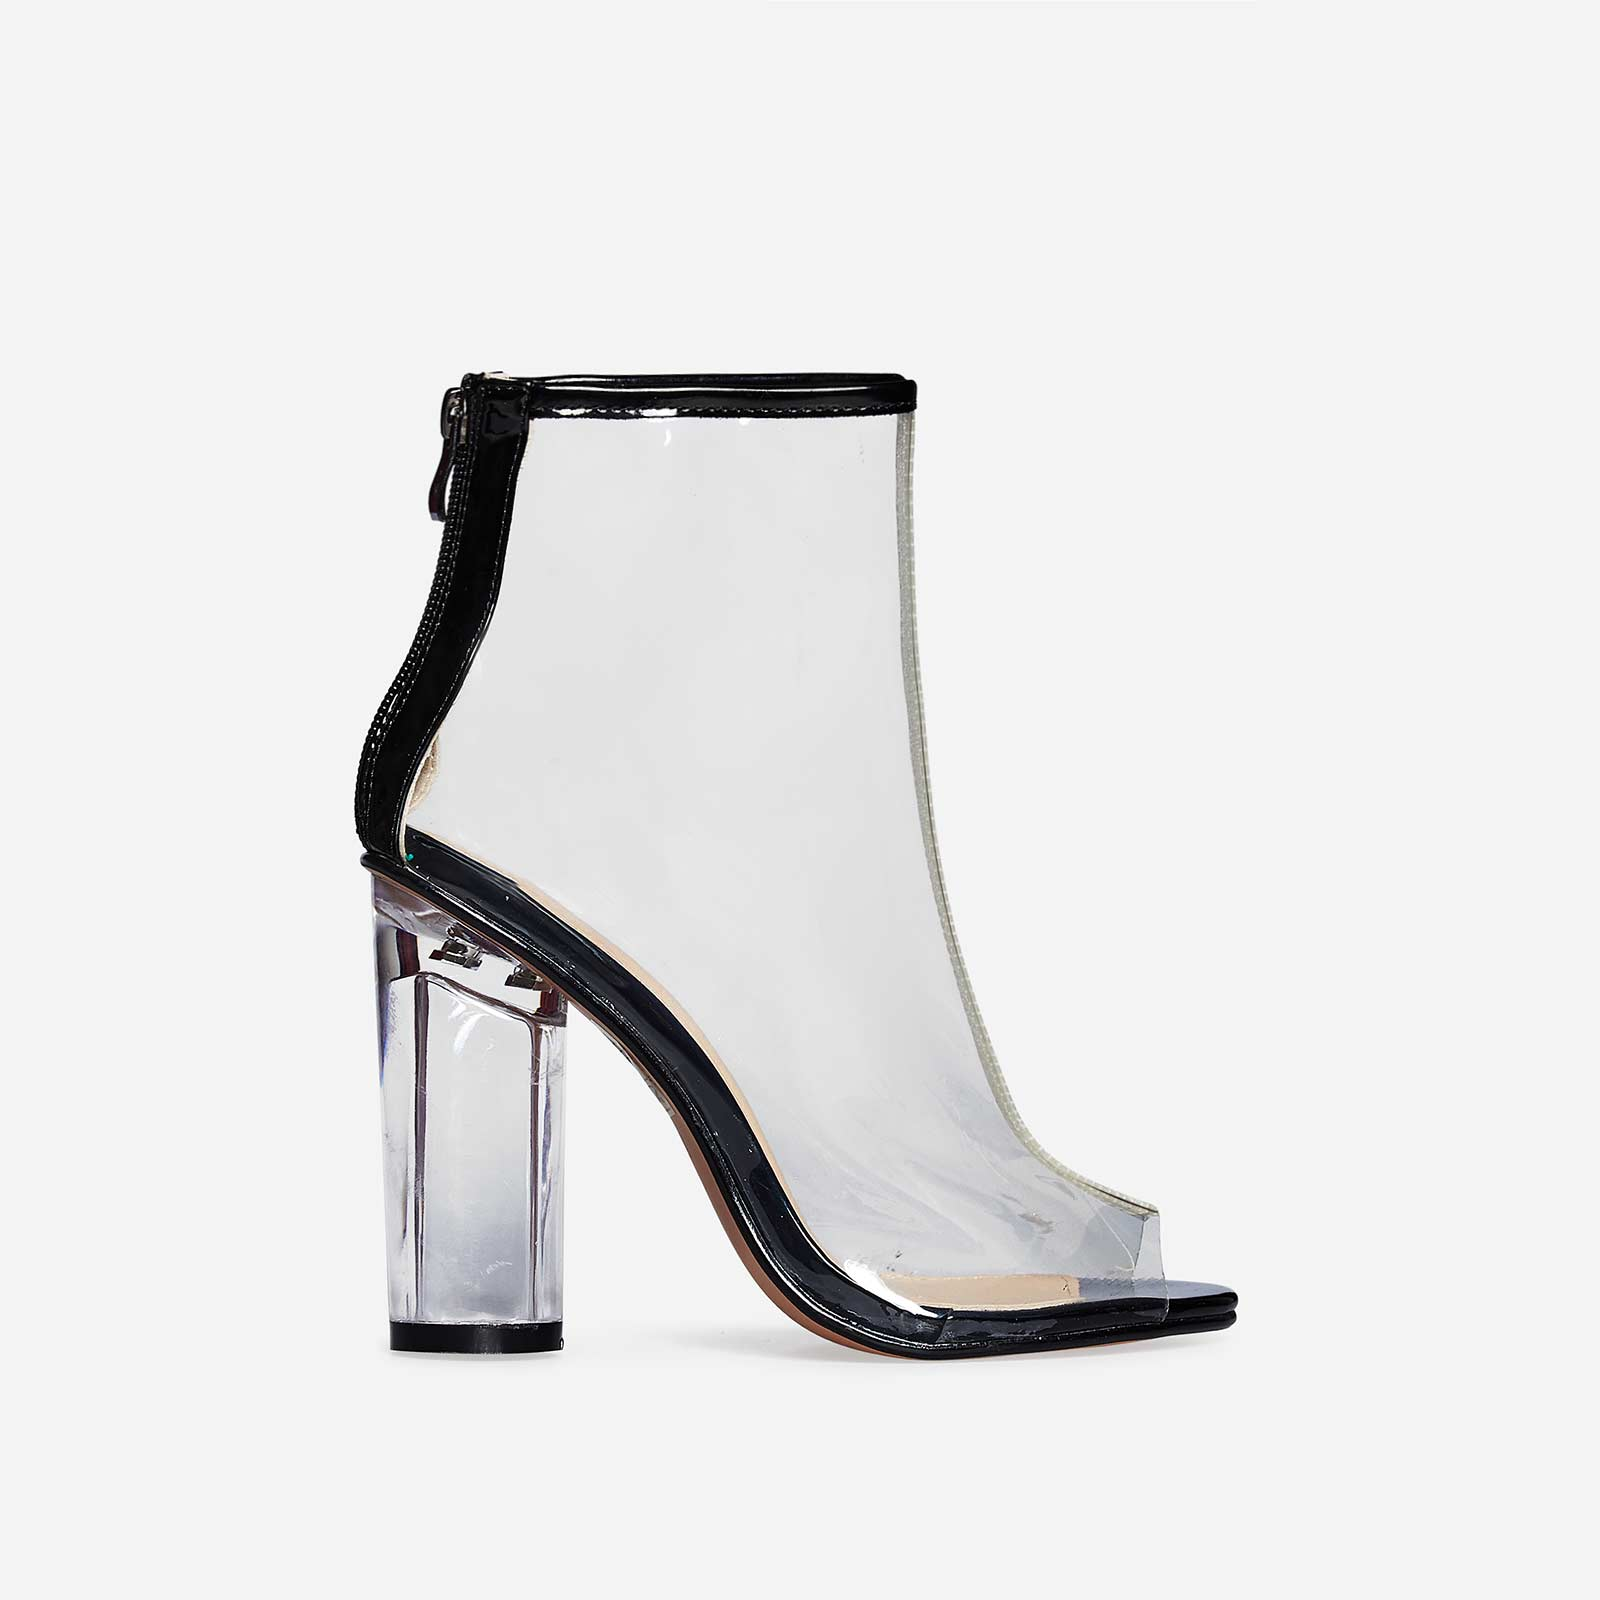 Cate Peep Toe Perspex Ankle Boot In Black Patent